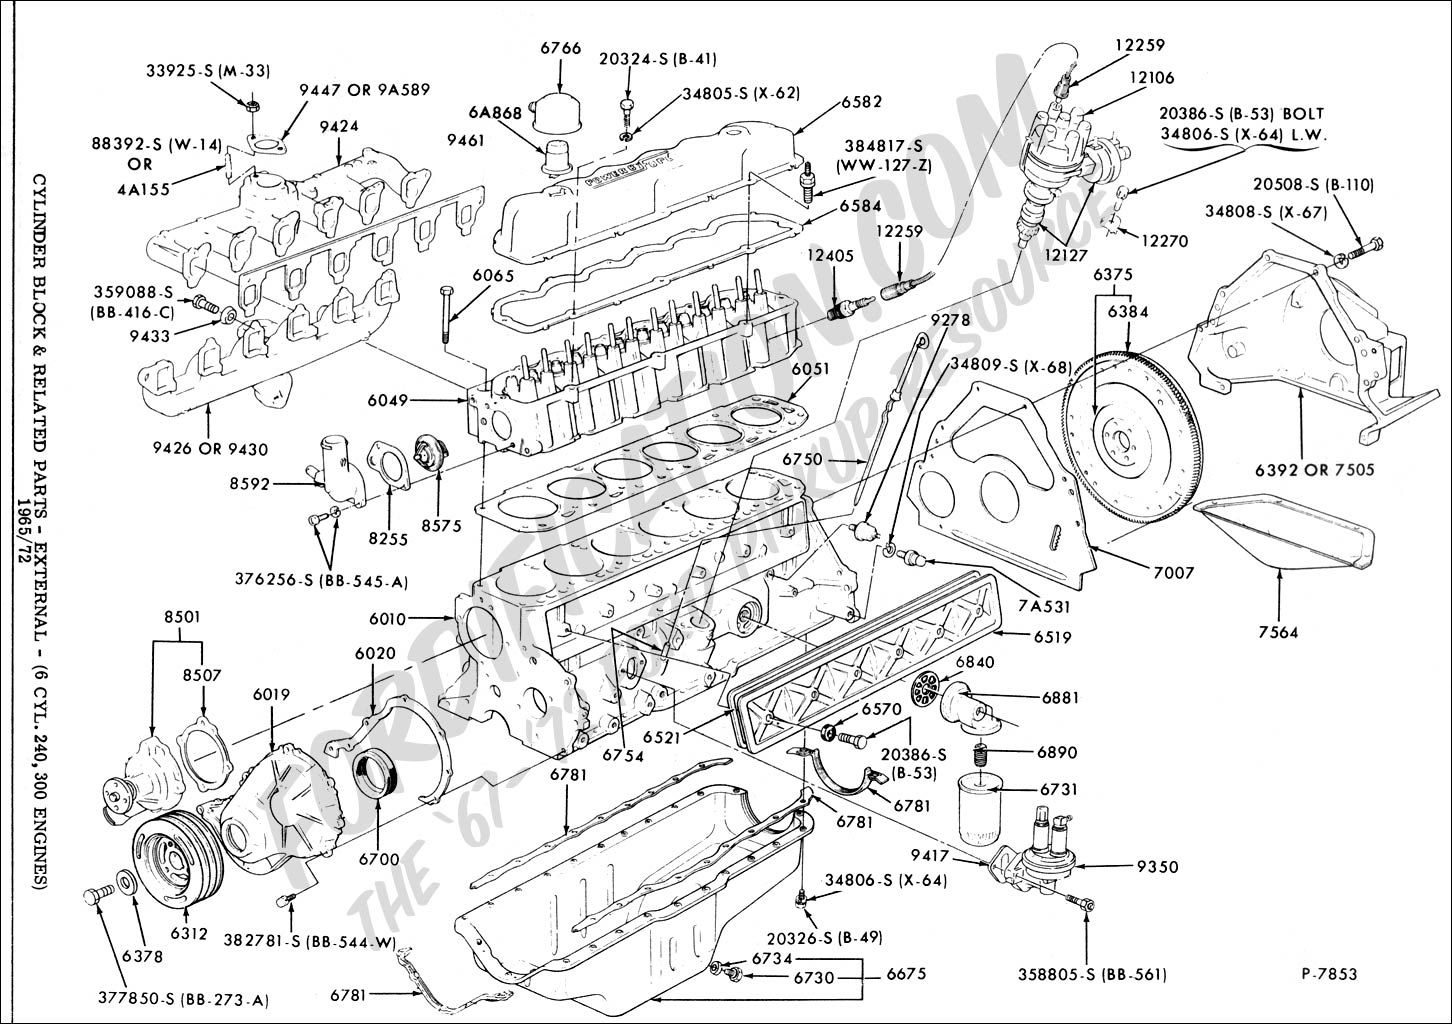 1999 ford f 150 4 6 v8 engine diagram [ 1452 x 1024 Pixel ]